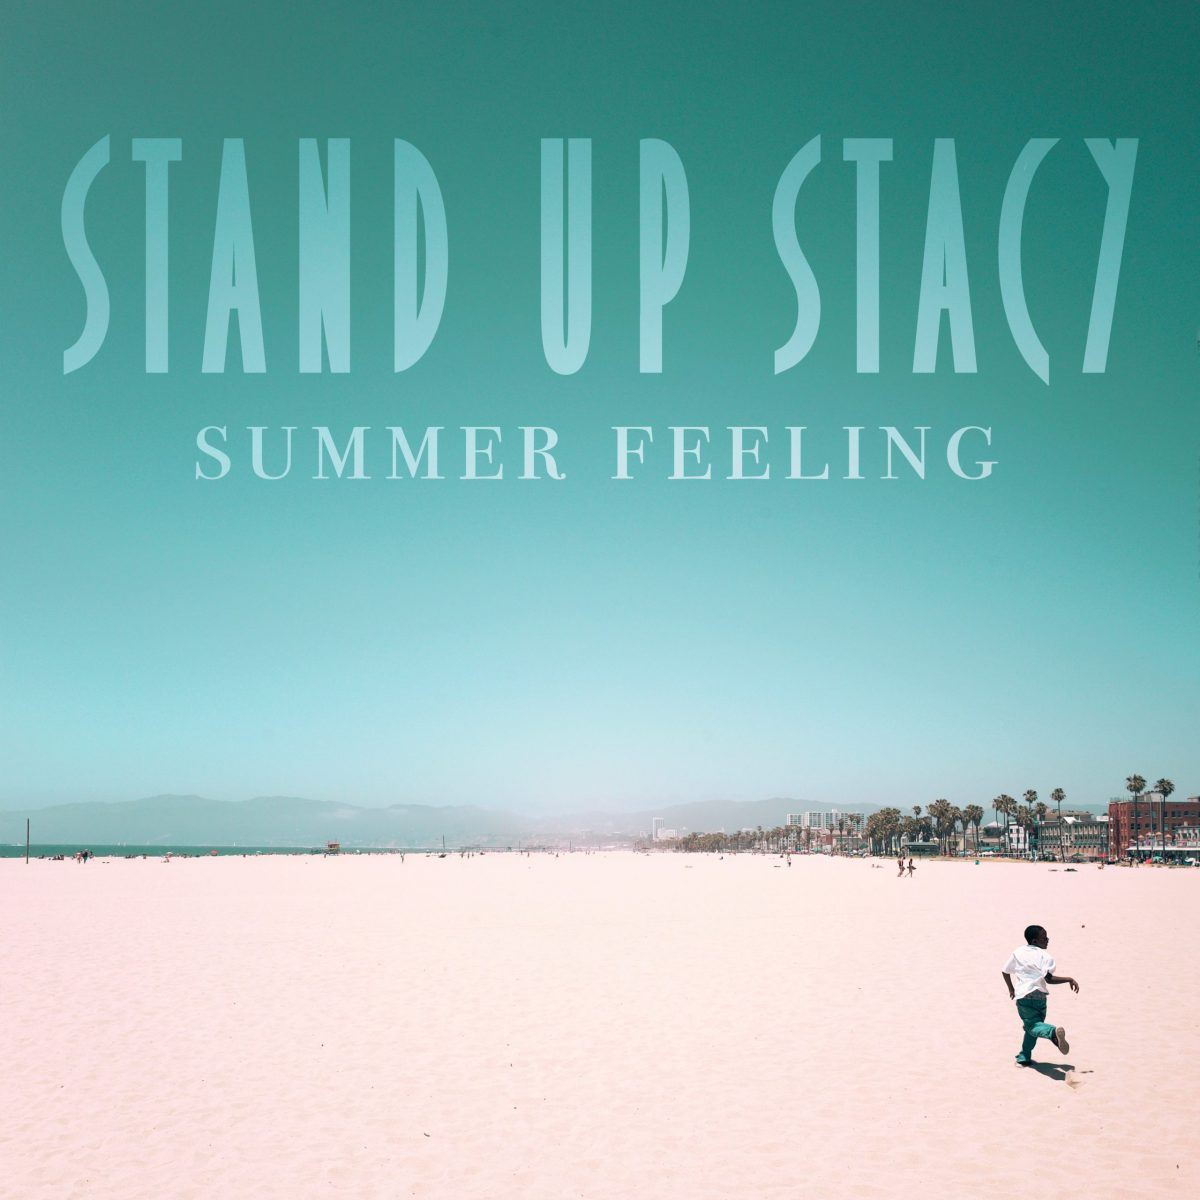 stand-up-stacy-summer-feeling-single-review